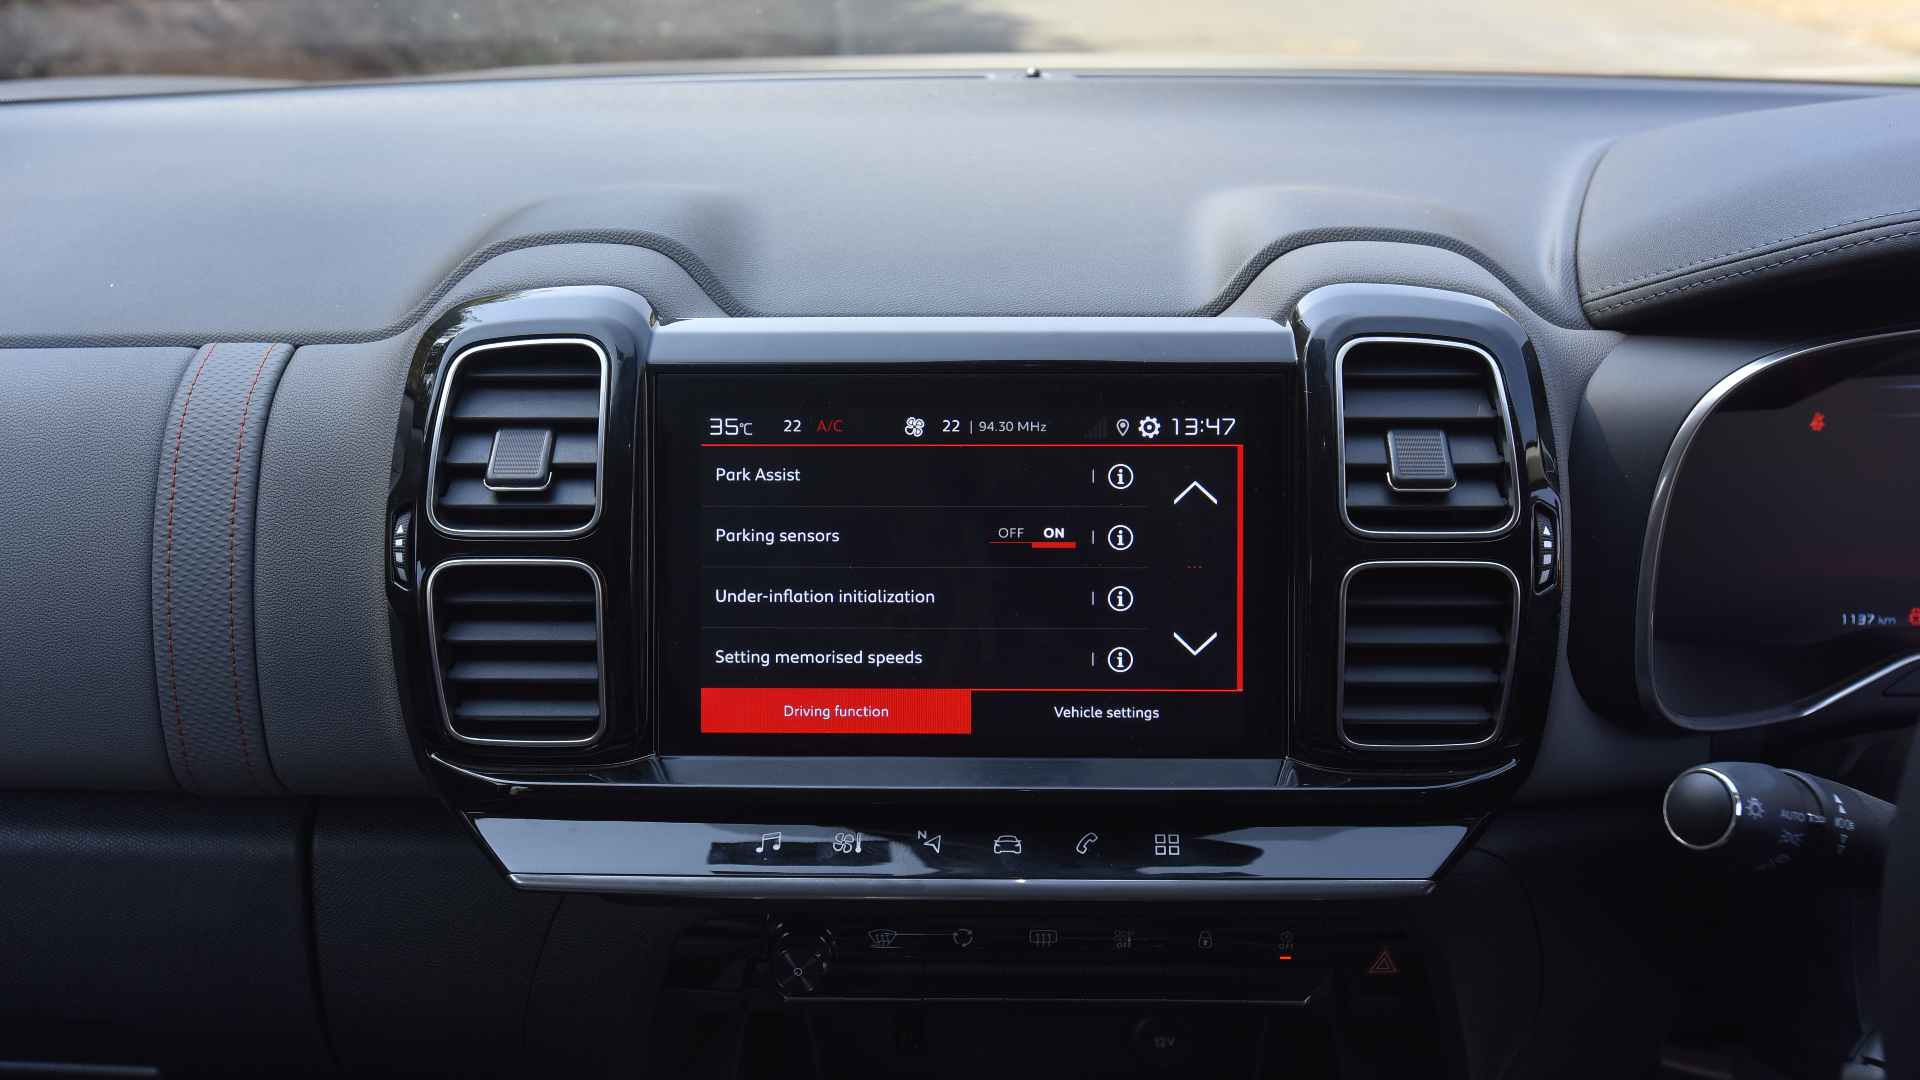 The C5's infotainment feels a bit dated and misses out on wireless Apple CarPlay/Android Auto. Image: Overdrive/Anis Shaikh